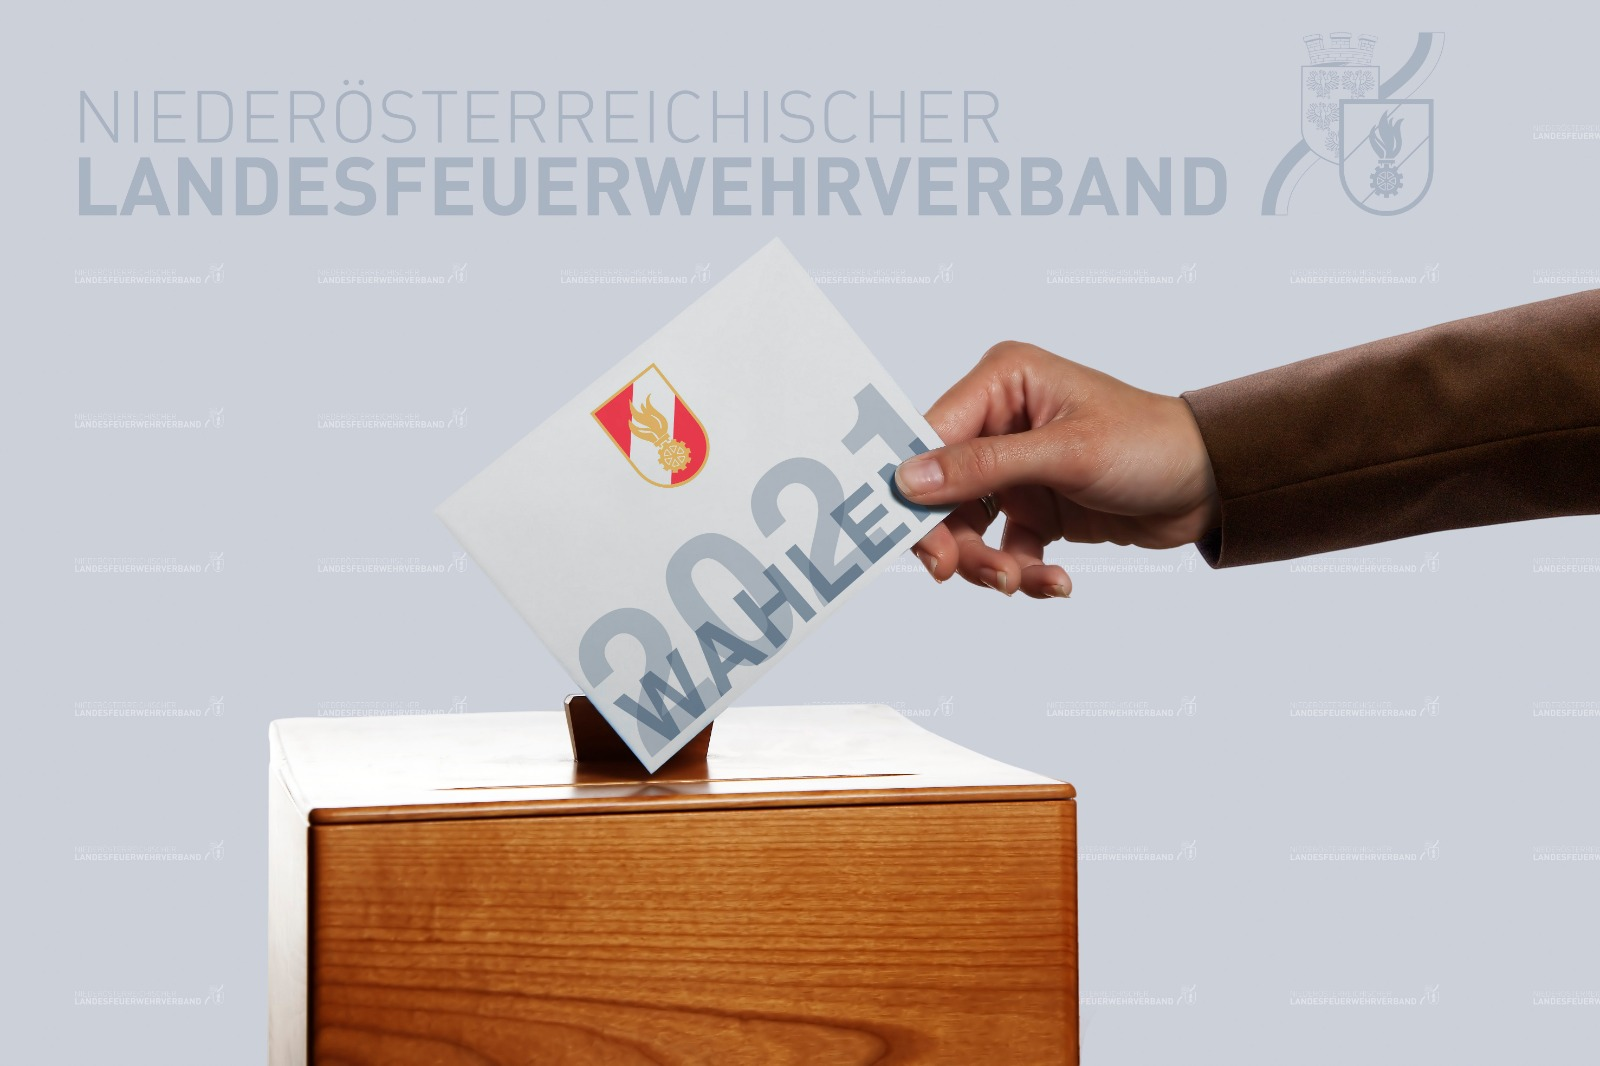 https://www.noe122.at/seitenelemente/header-bild/head-wahlen2021.jpg?thumbnail=1360